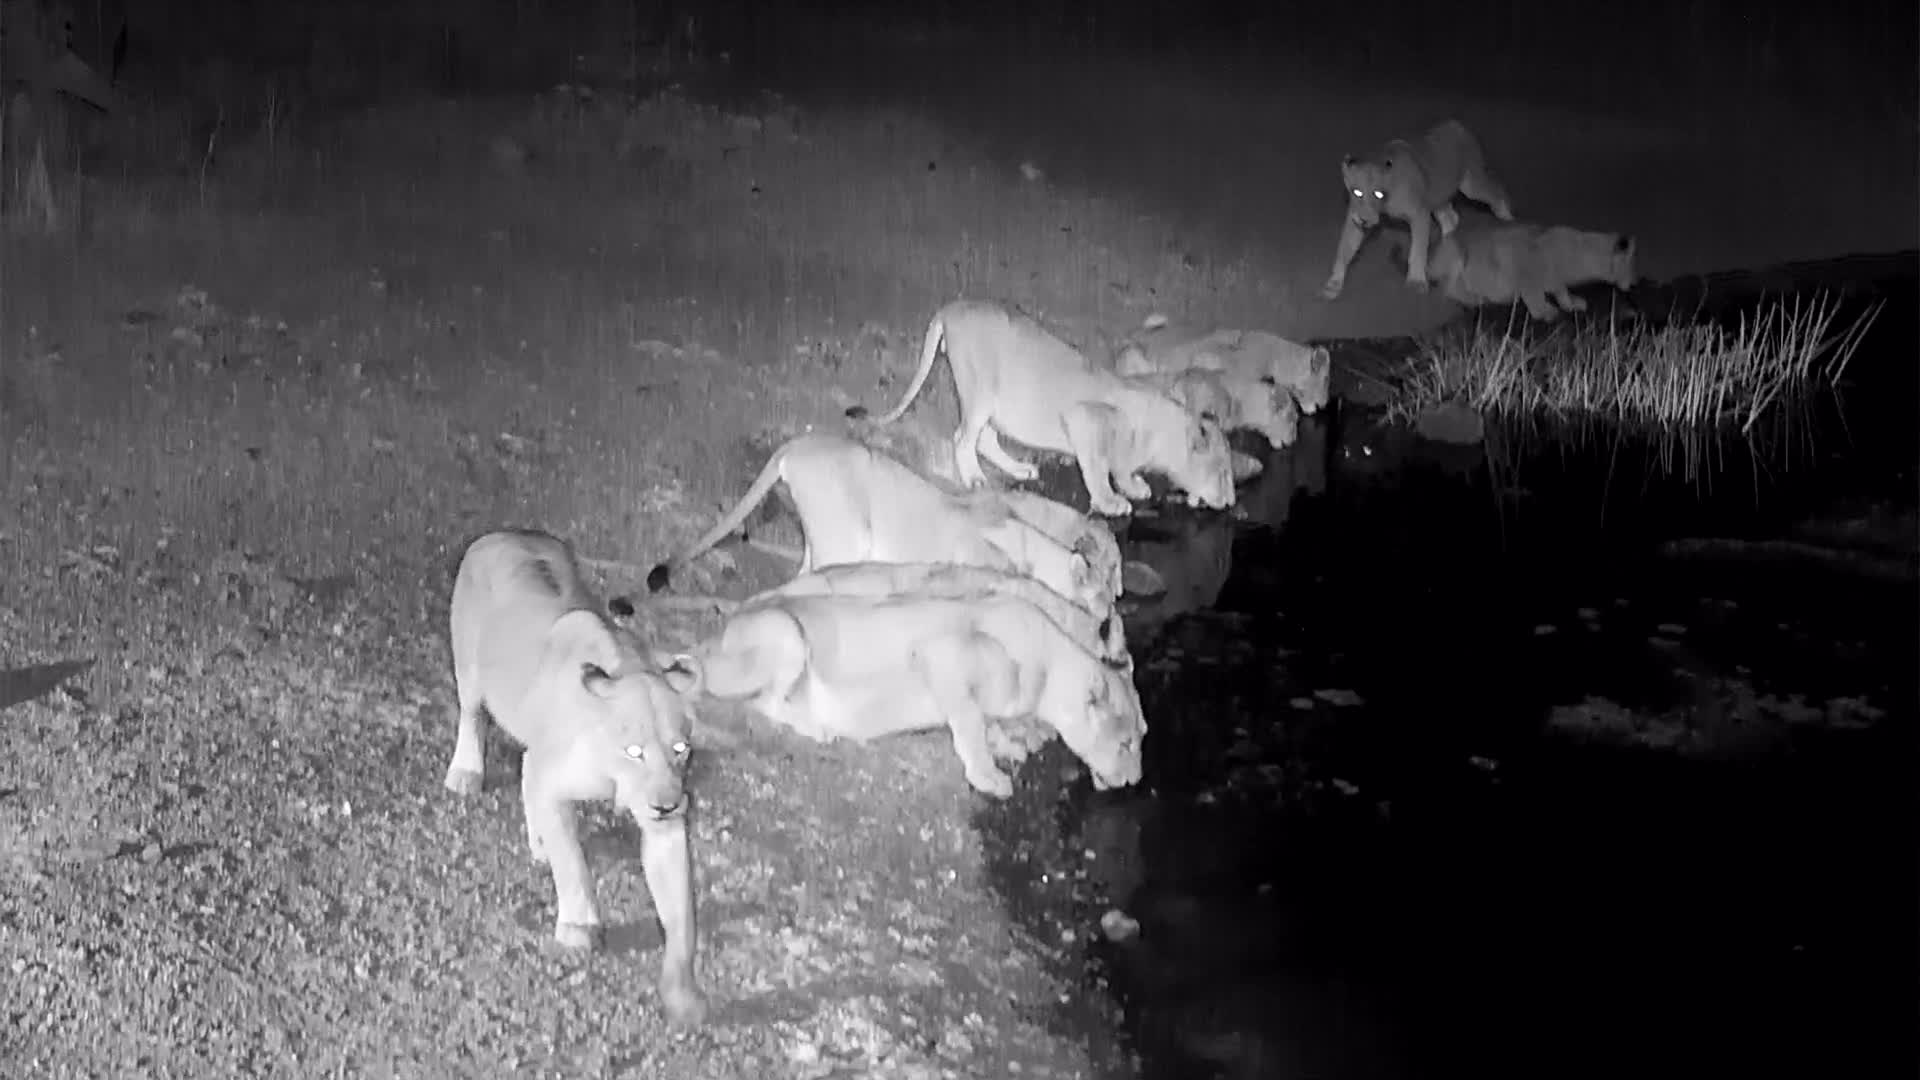 VIDEO:  Lions:  Lost of Lions